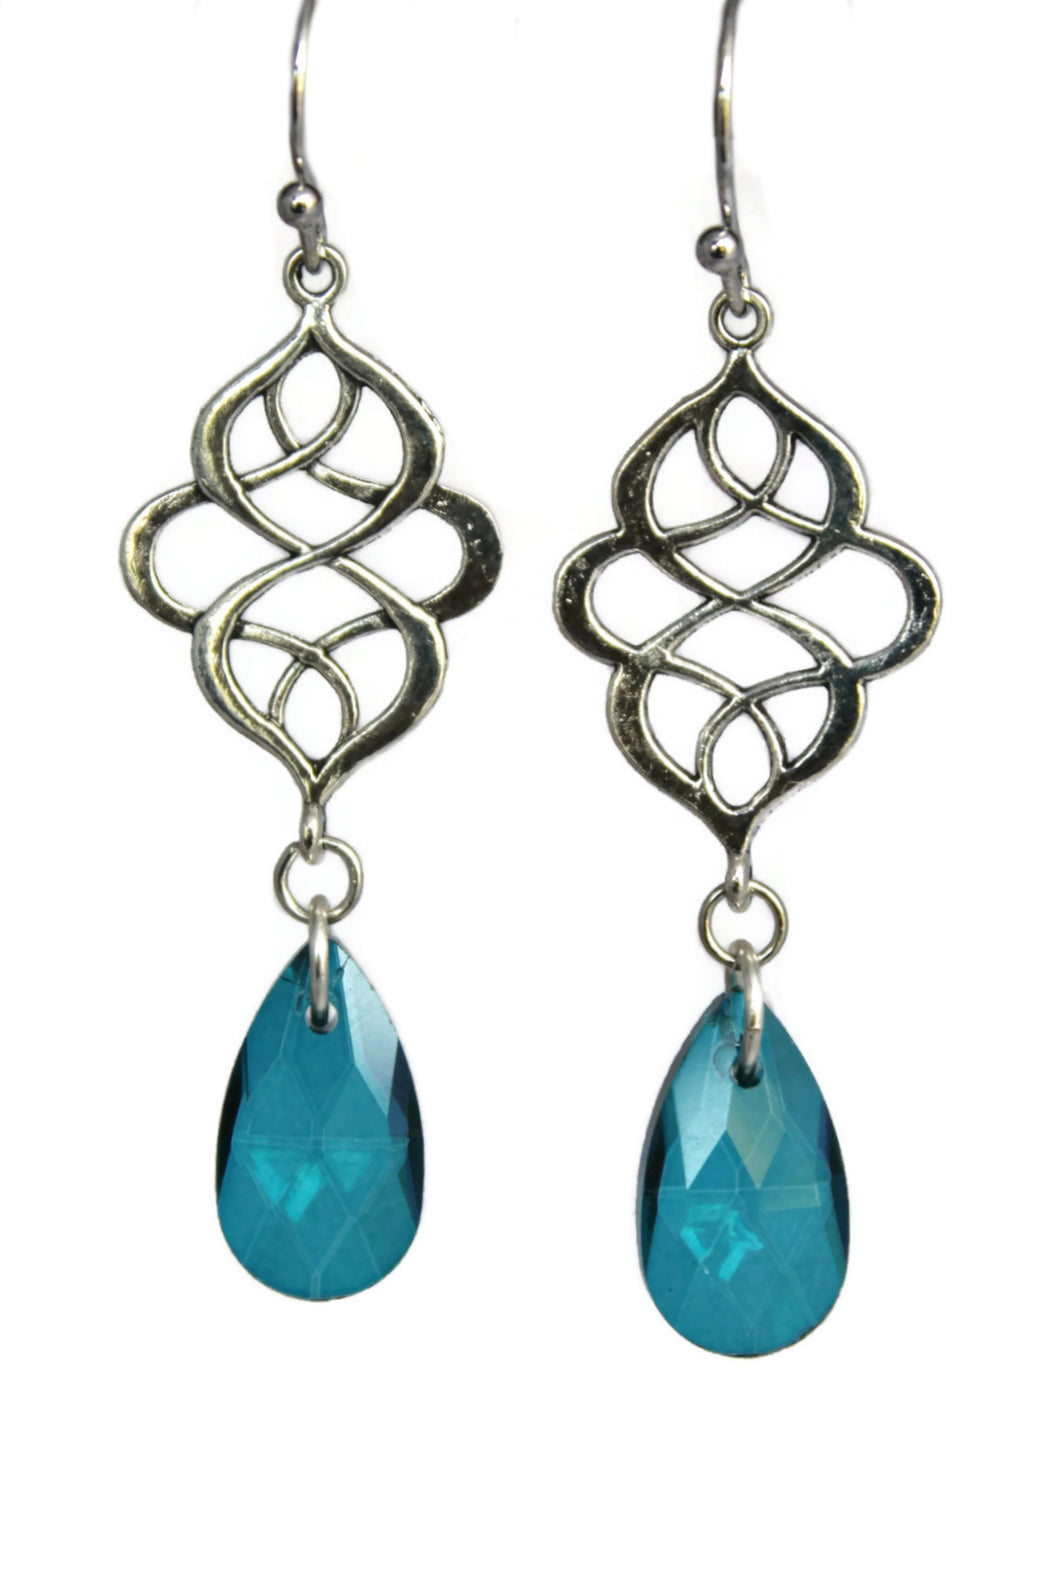 Celtic Knot Teardrop Dangle Earrings Antiqued Silver Marquise Boho Chic Jewelry